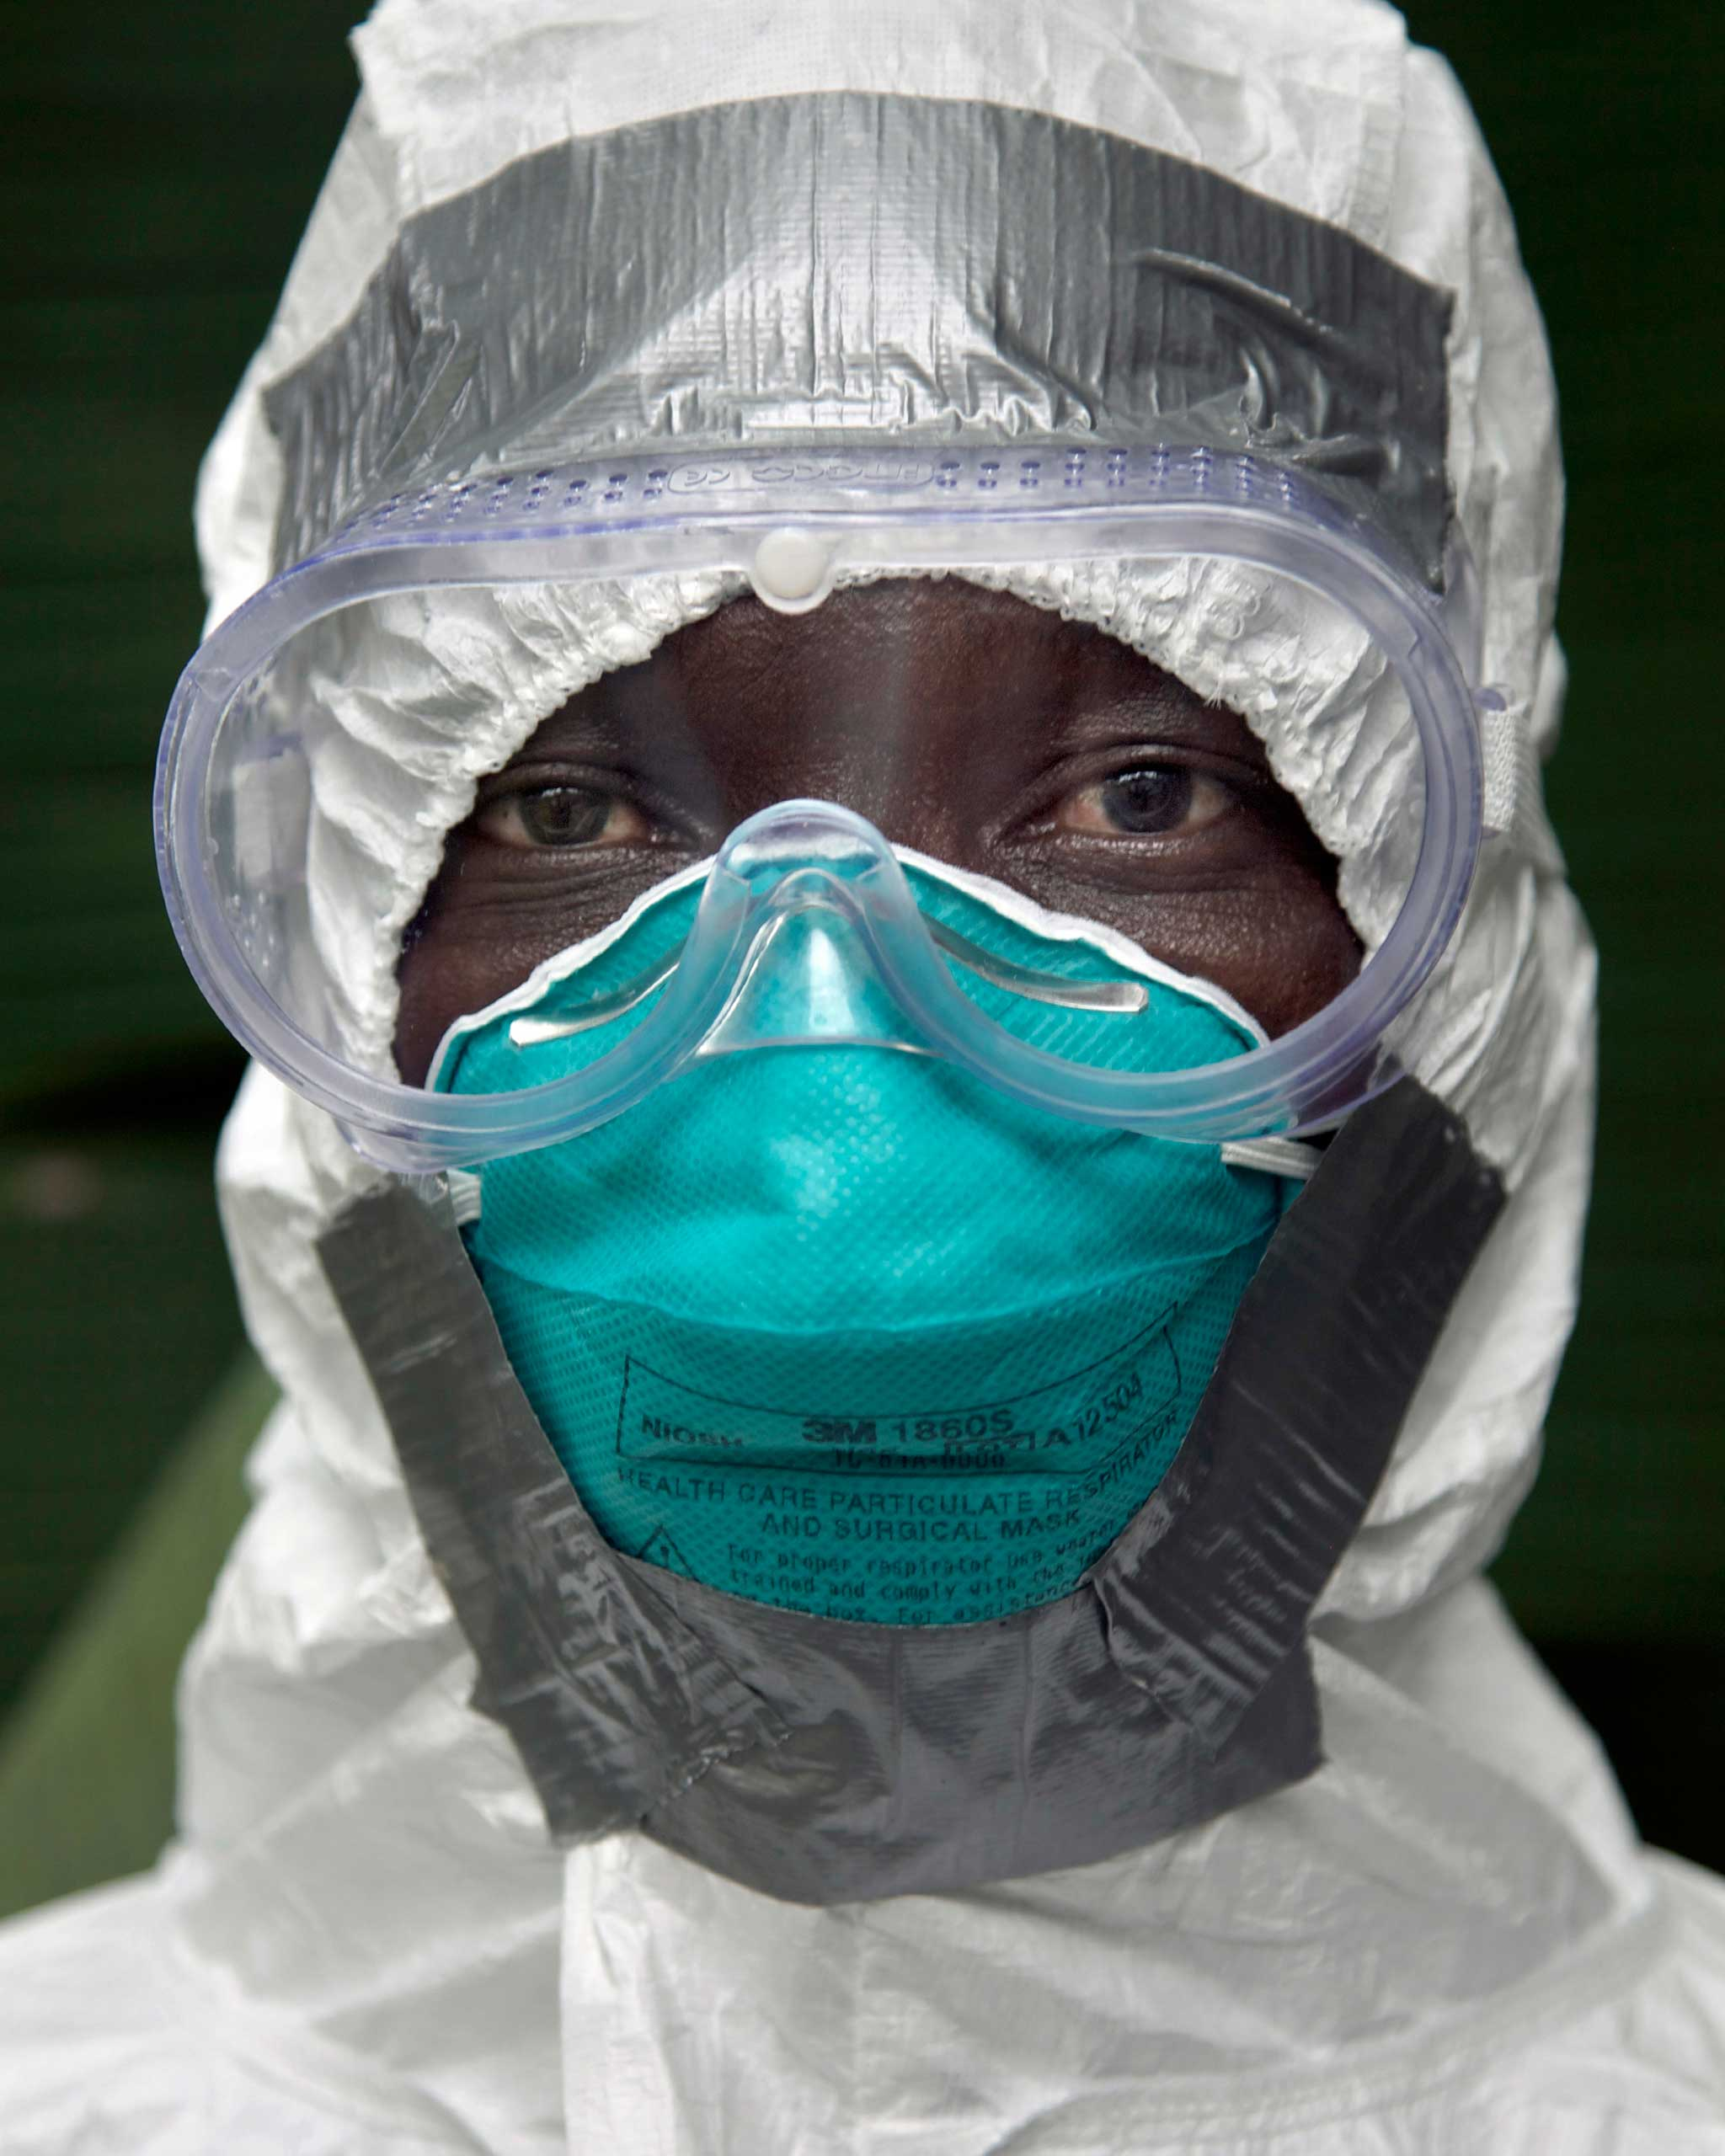 Foday Galla, 37, Ambulance Supervisor, photographed at home wearing a PPE (Personal Protective Equipment) suit, in Signboard community, in Monrovia, Liberia. Nov. 26, 2014